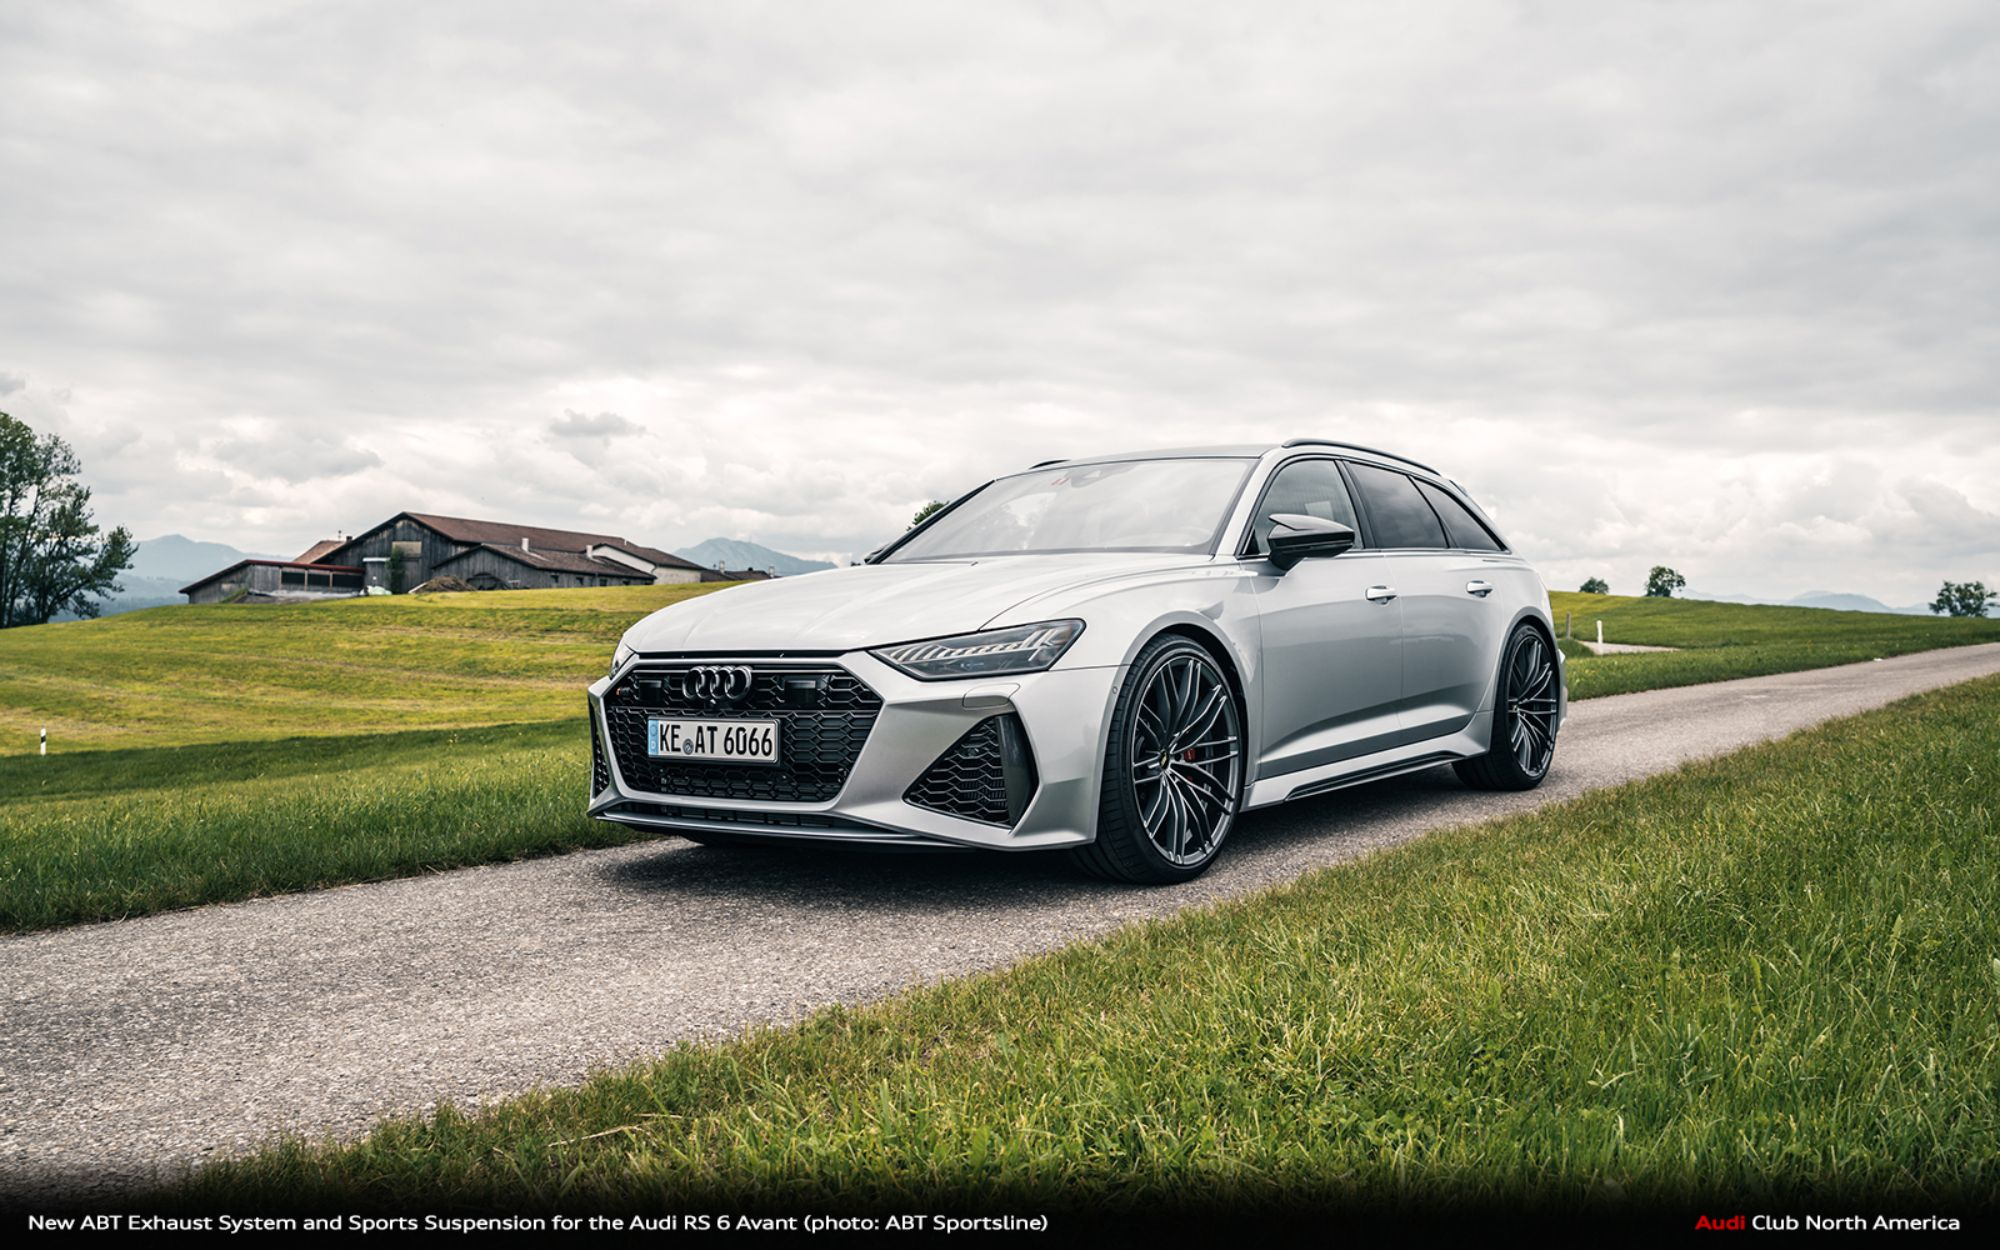 New Abt Exhaust System And Sports Suspension For The Audi Rs 6 Avant Audi Club North America